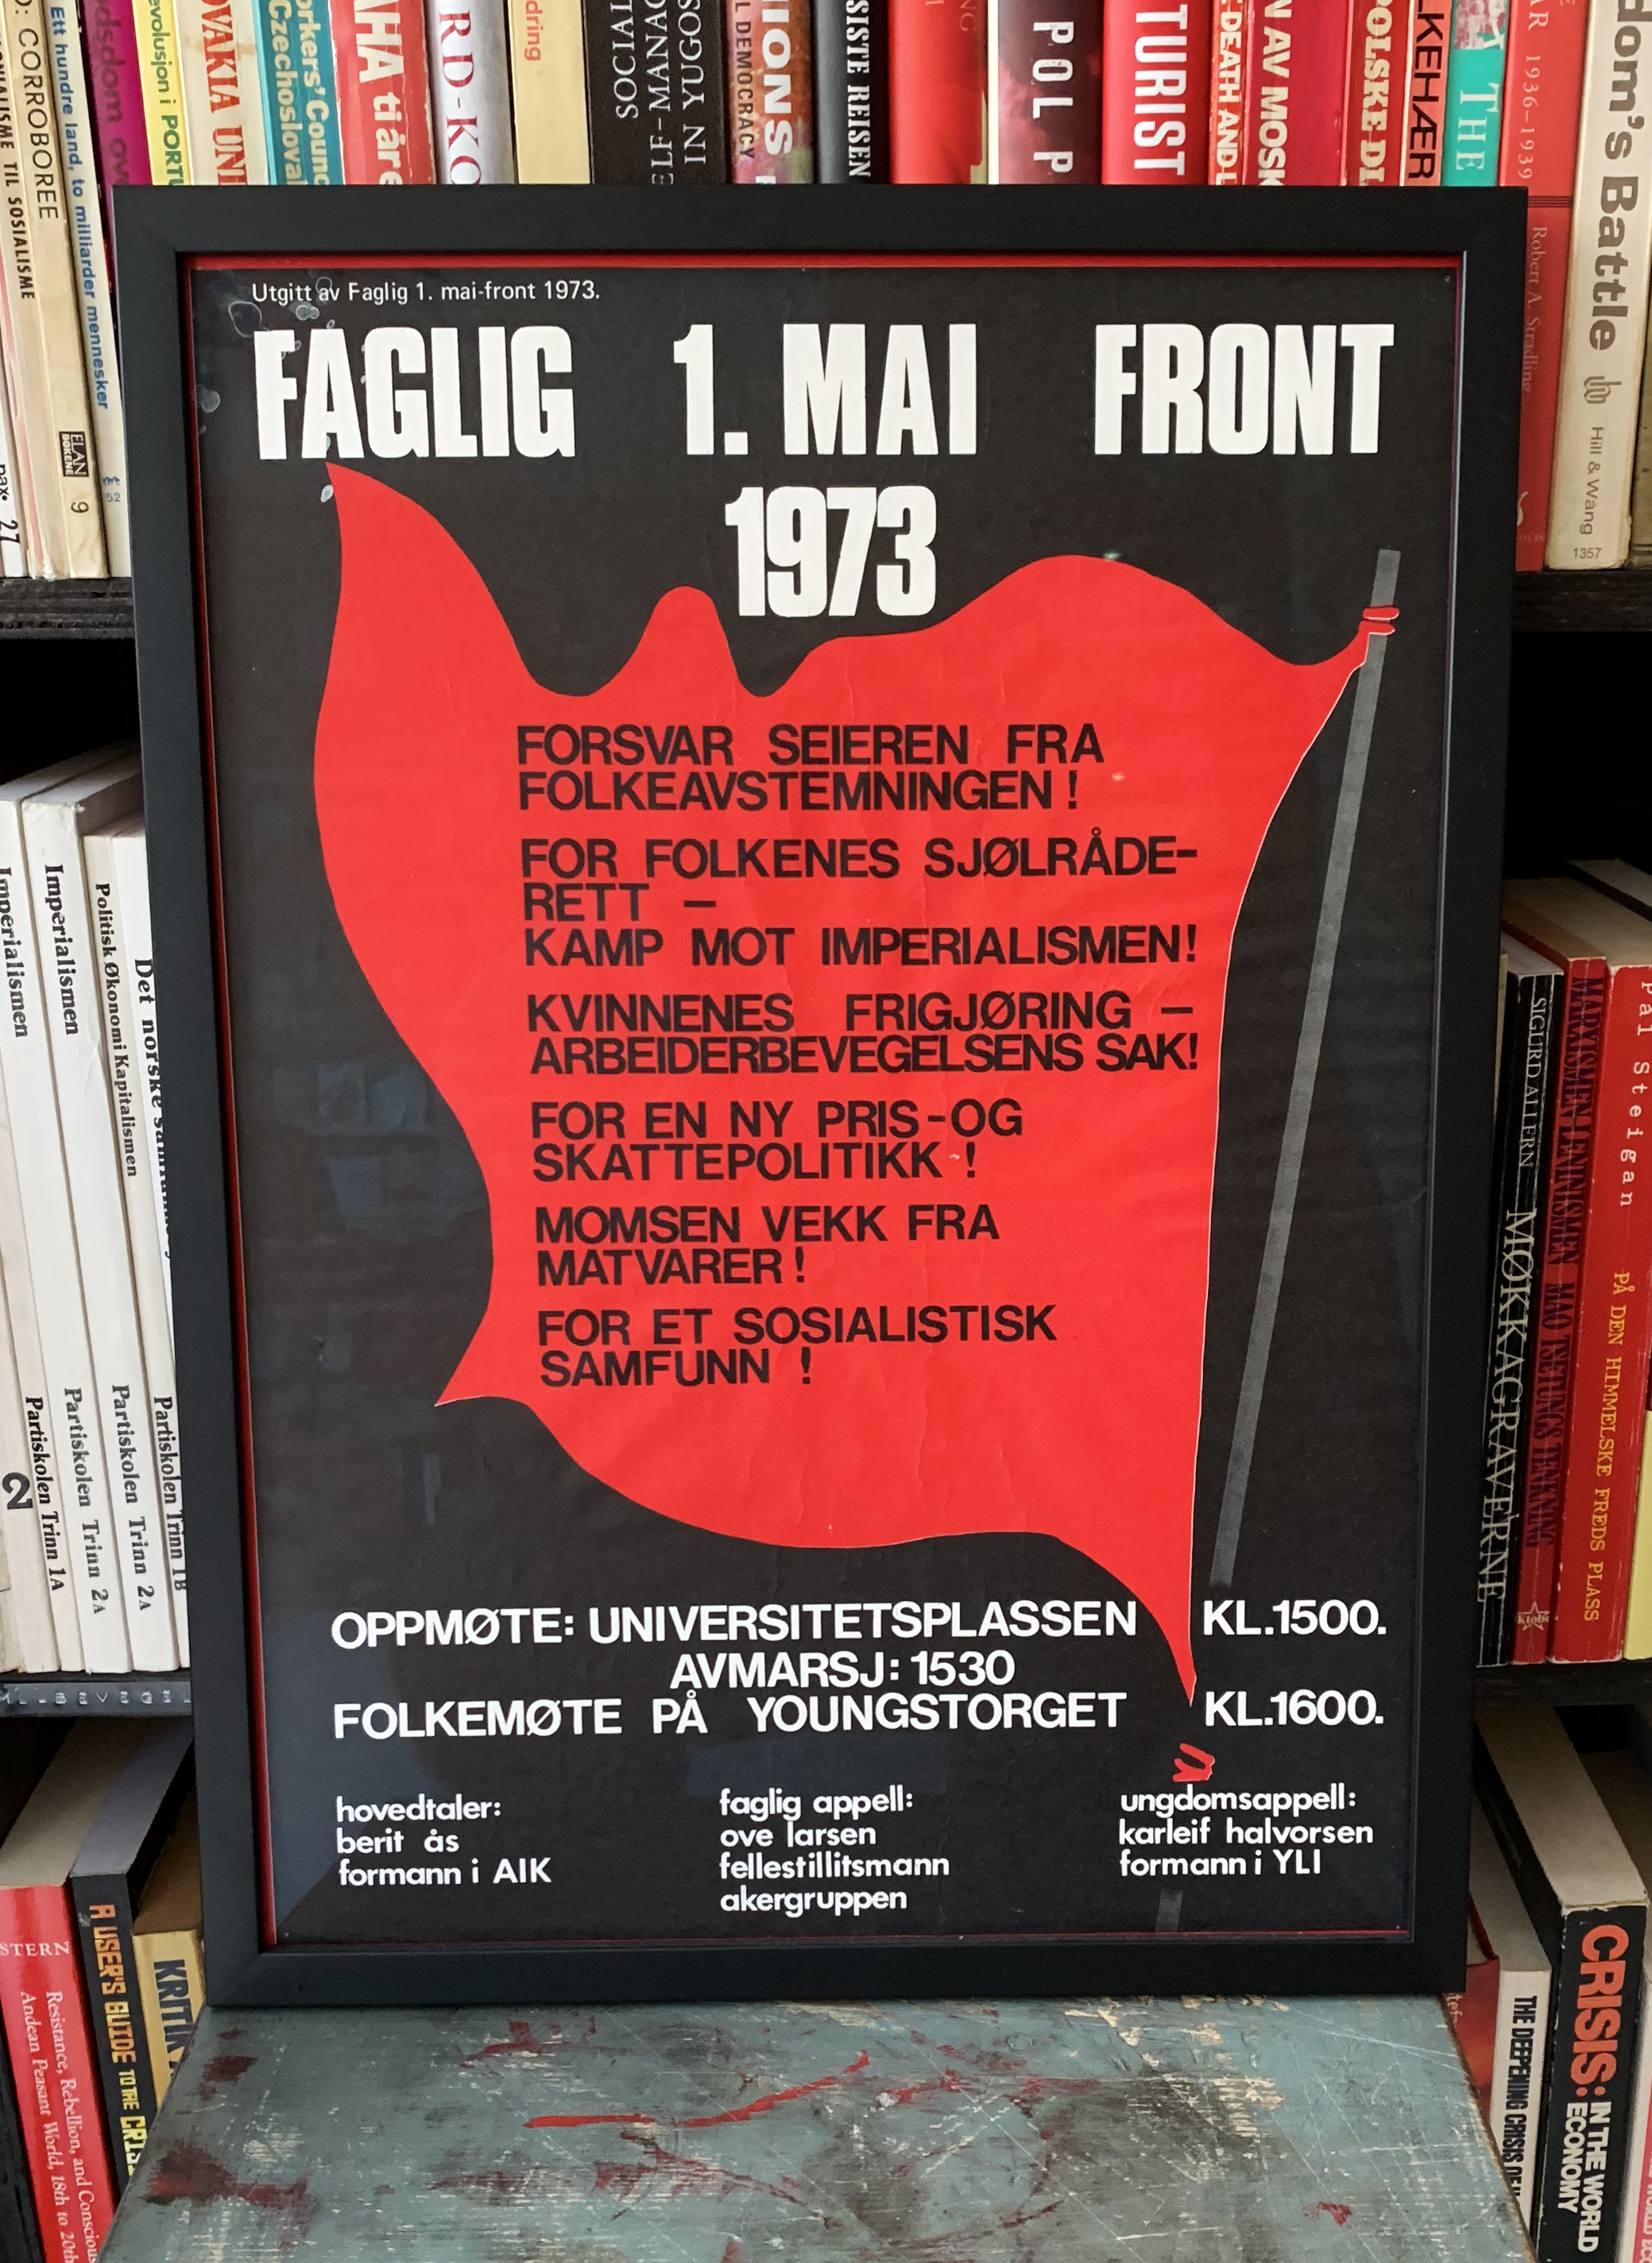 Faglig 1. maifront (1973)